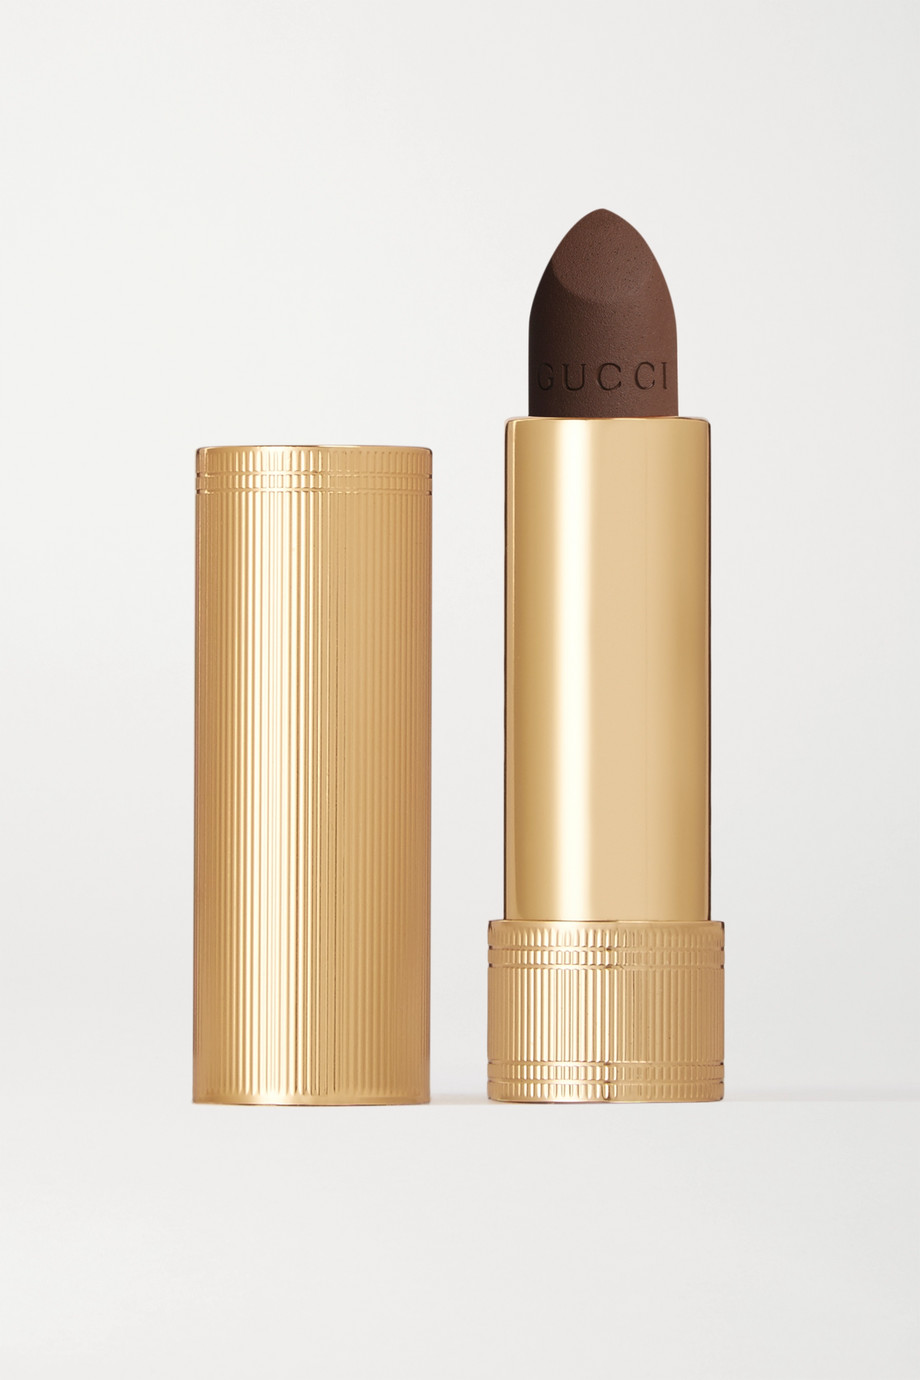 Gucci Beauty Rouge à Lèvres Mat Lipstick - Elliott Brown 111